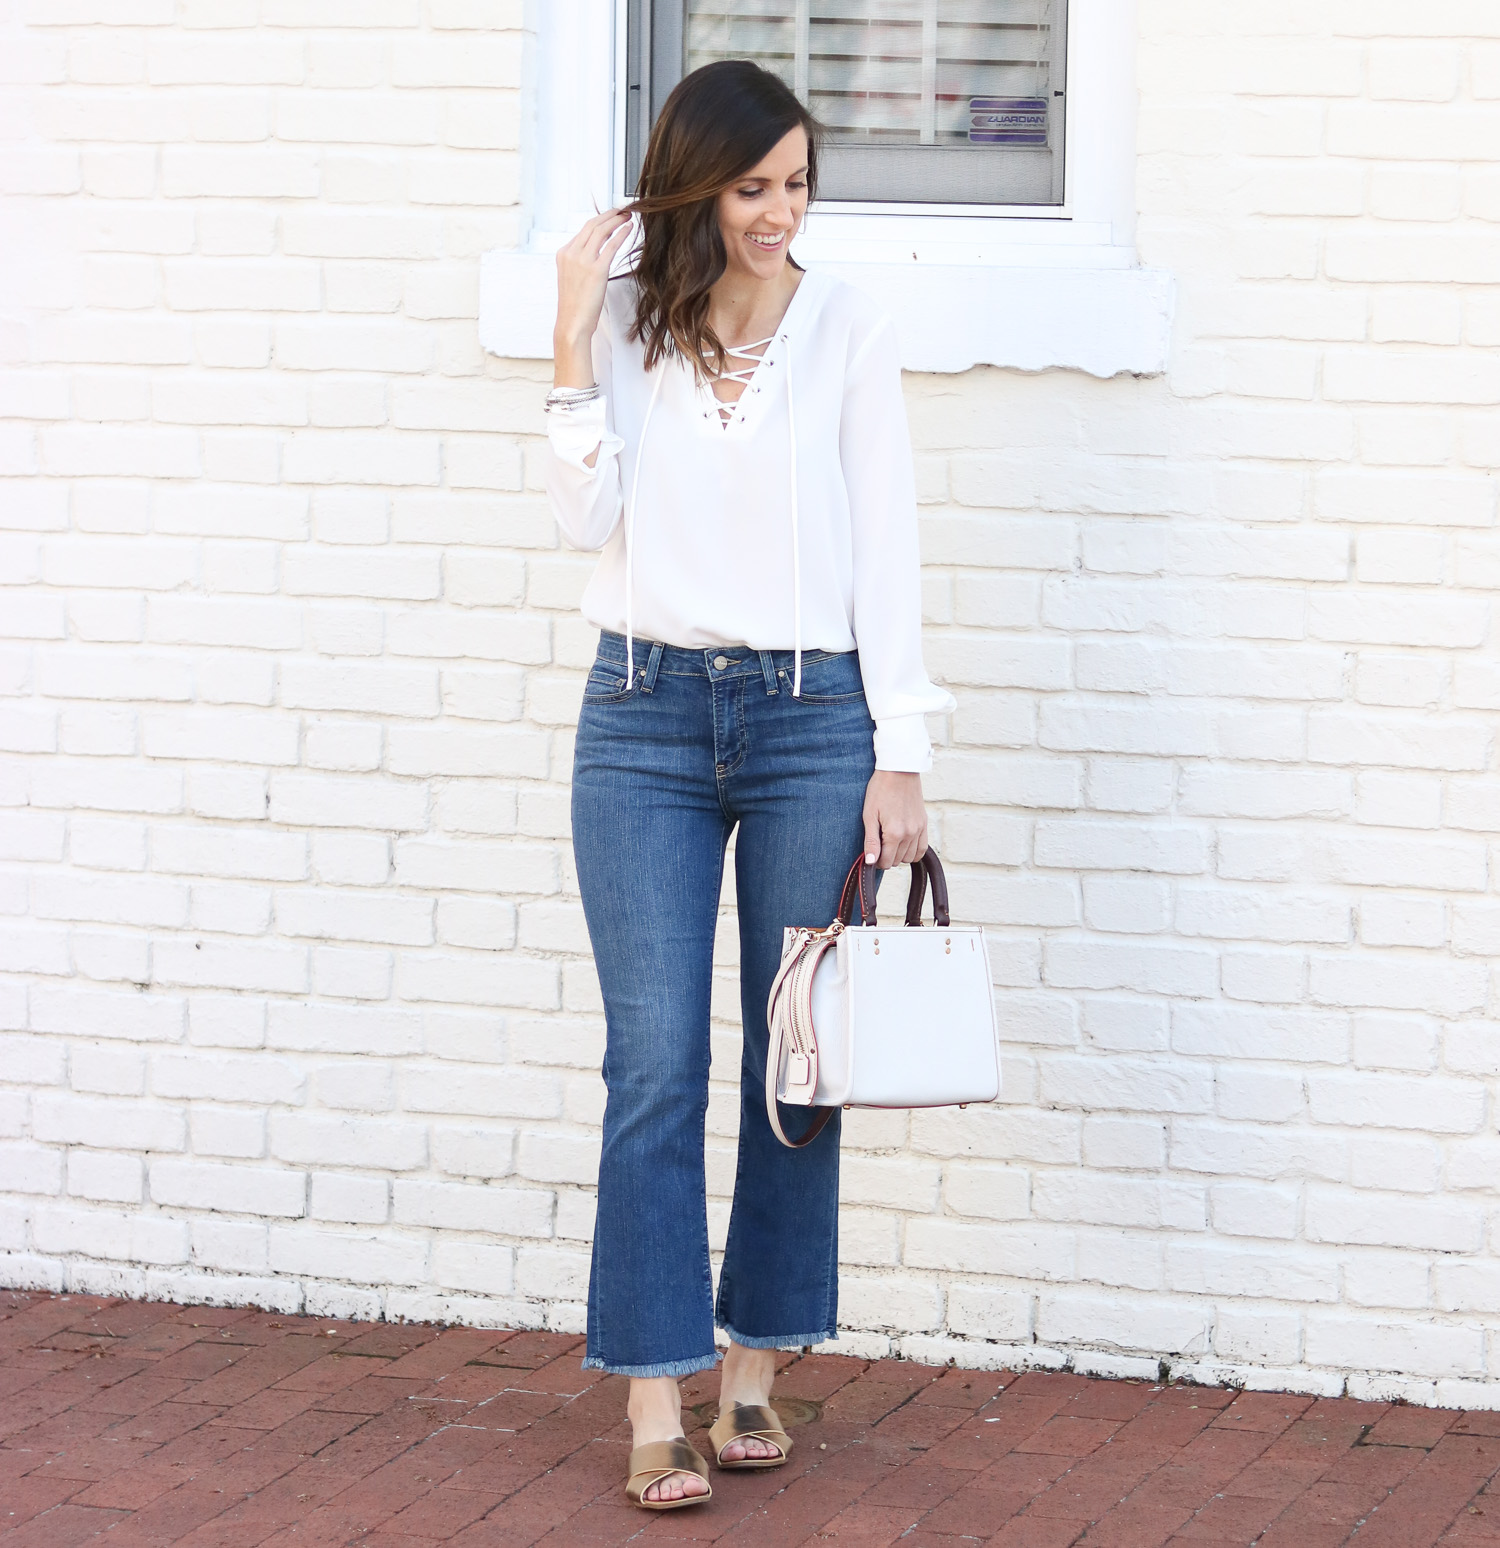 Cropped Flare Denim - Lace Up Top - Gold Slide Sandals @cobaltchronicle